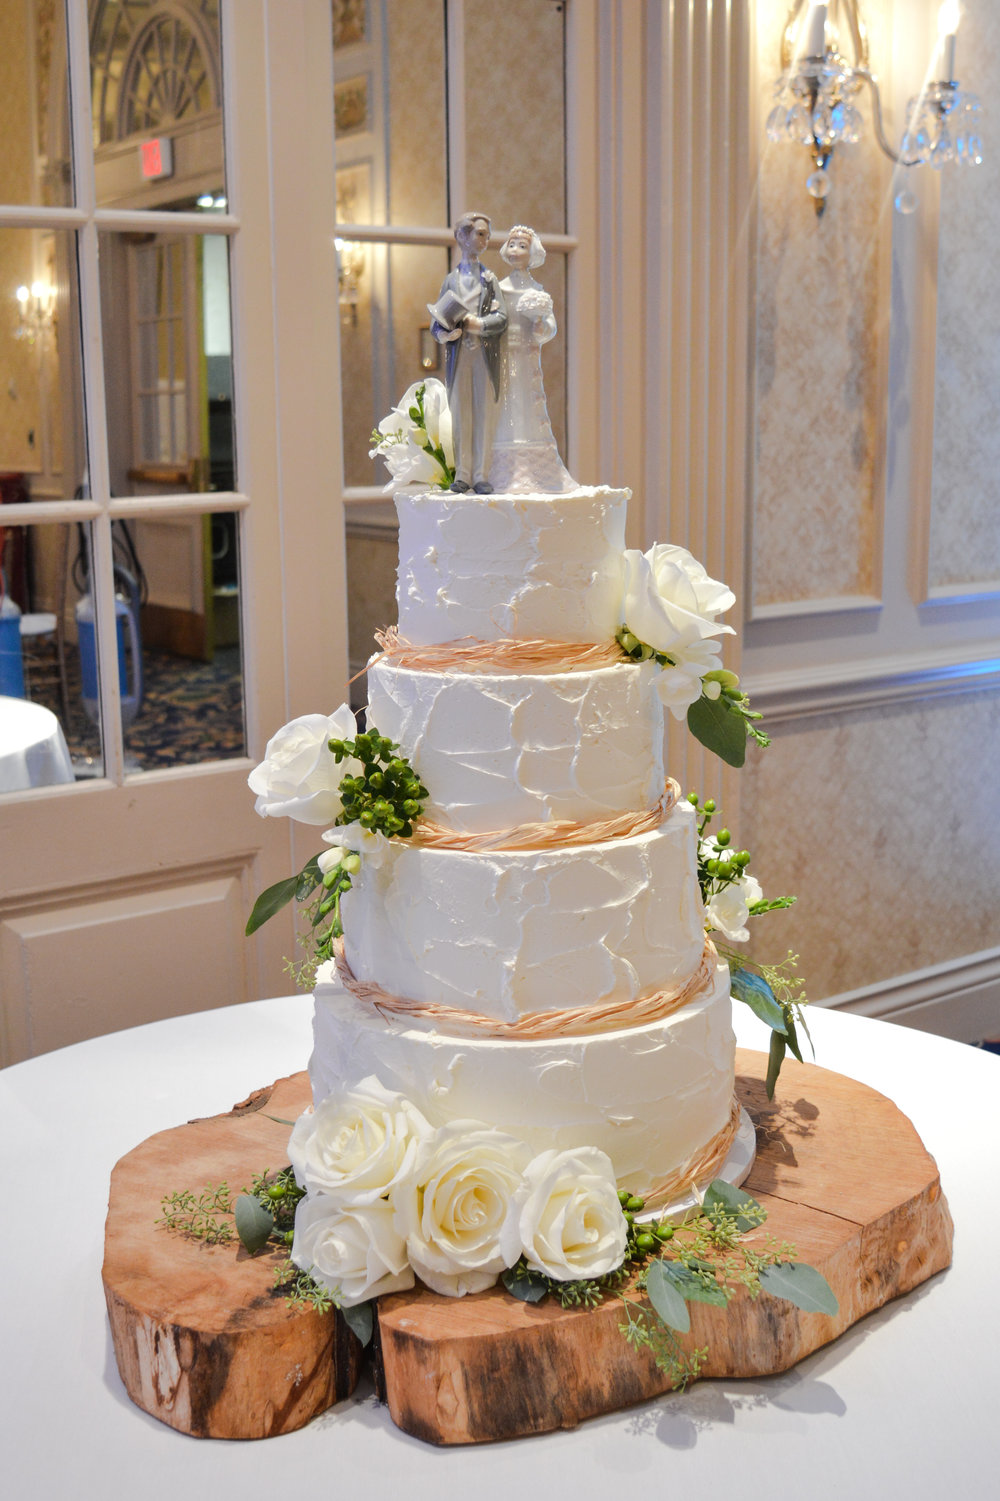 Hotel Roanoke Wedding Cake 2.jpg